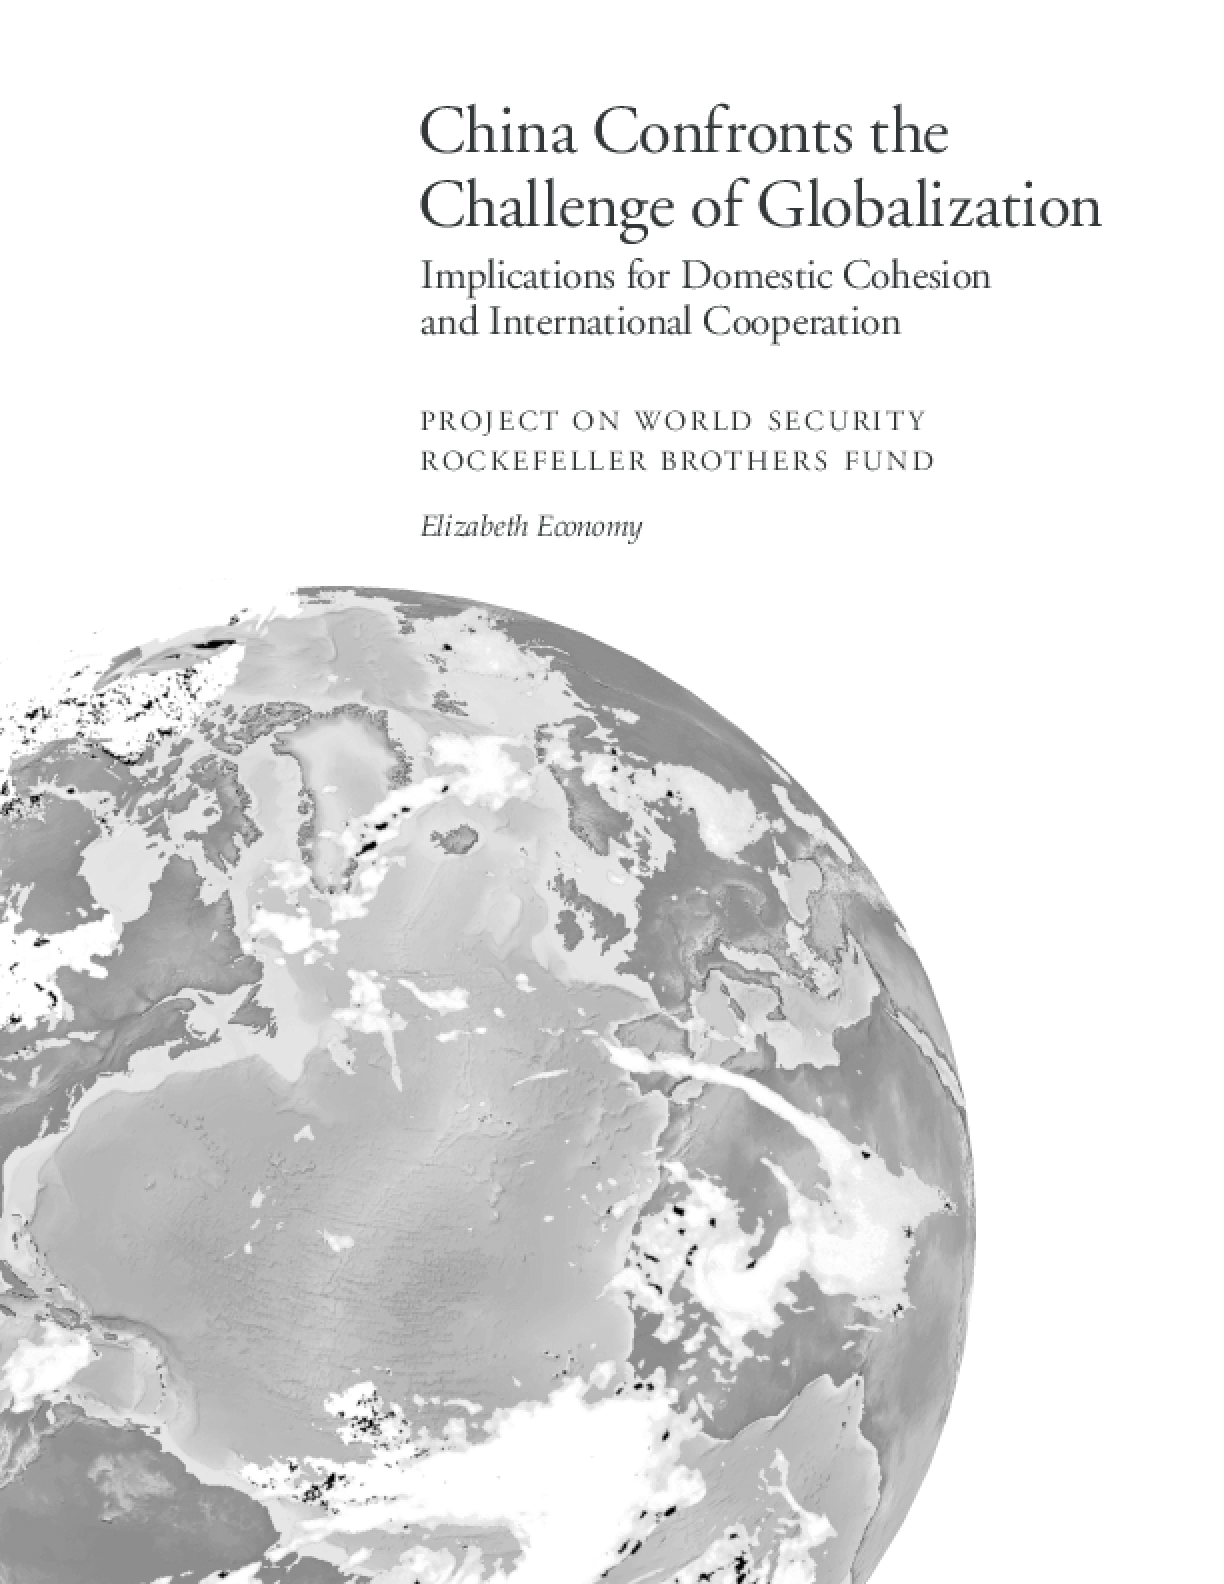 China Confronts the Challenge of Globalization: Implications for Domestic Cohesion and International Cooperation